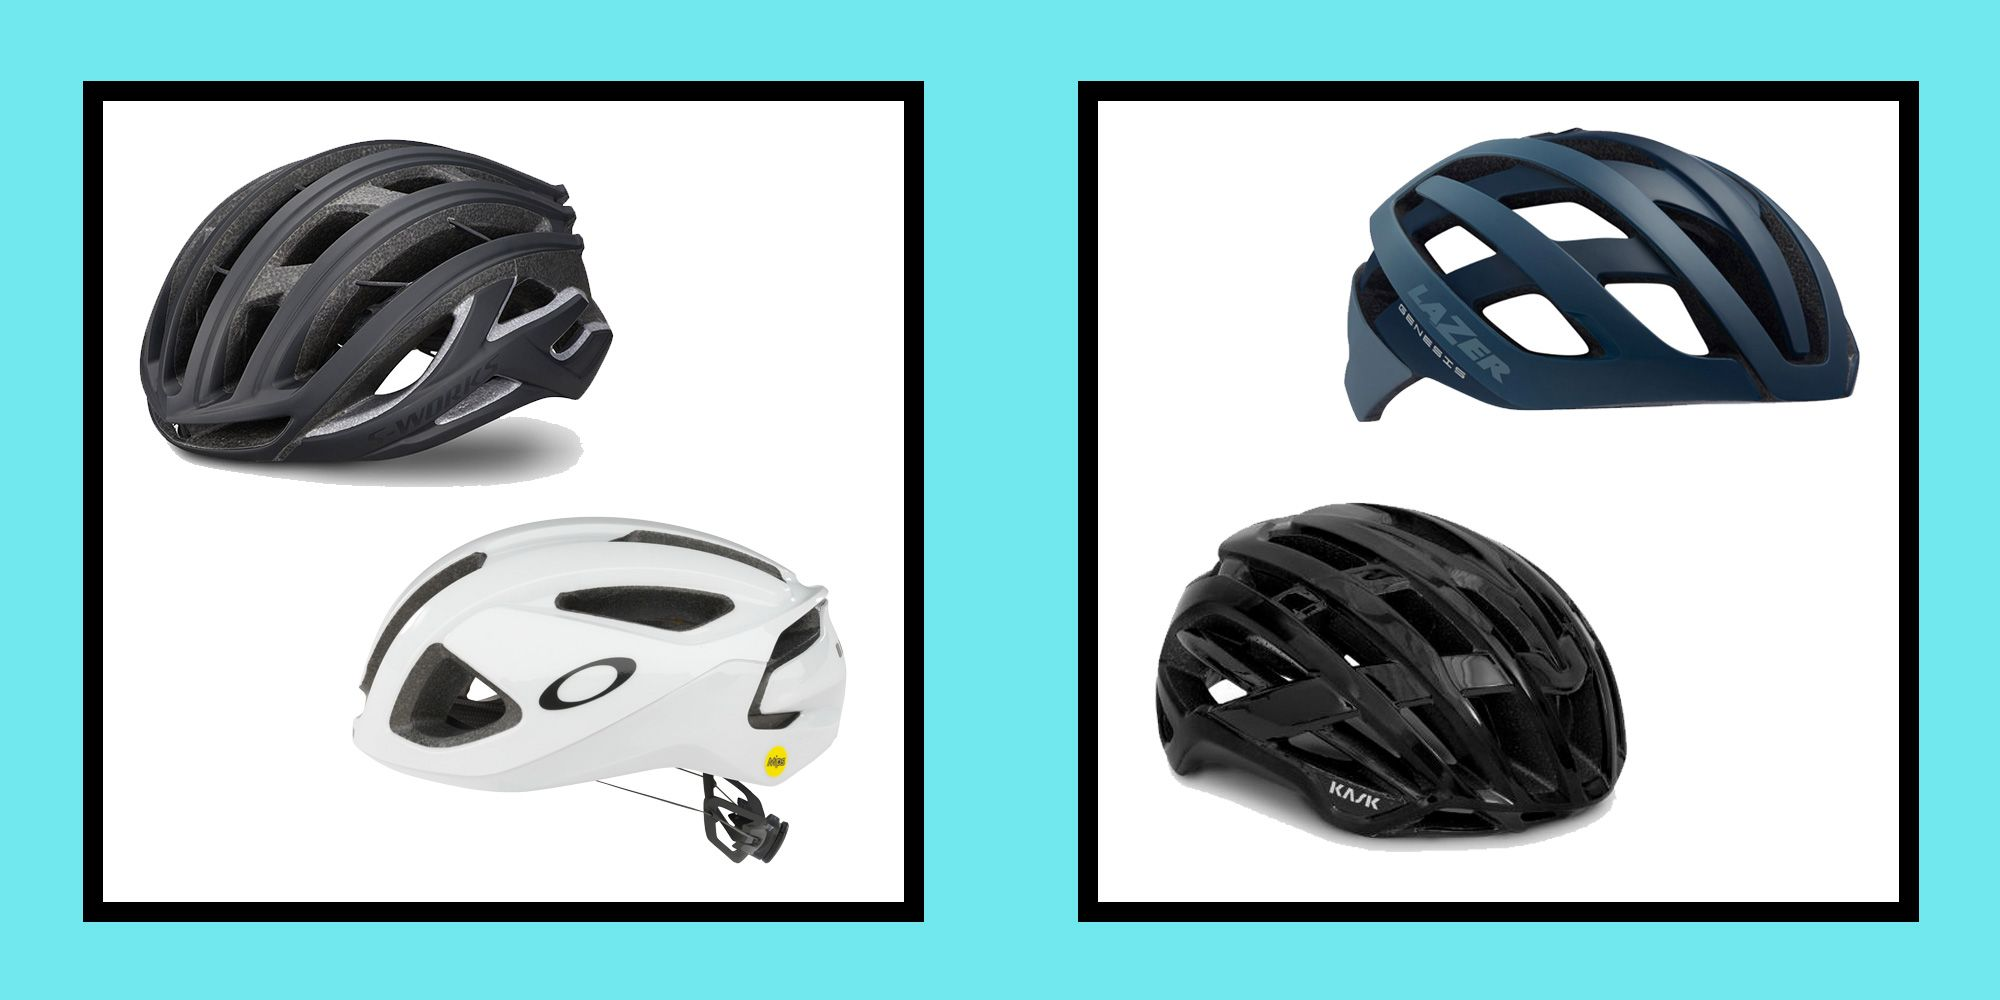 The best cycling helmets from Kask, Specialized, Lazer and more